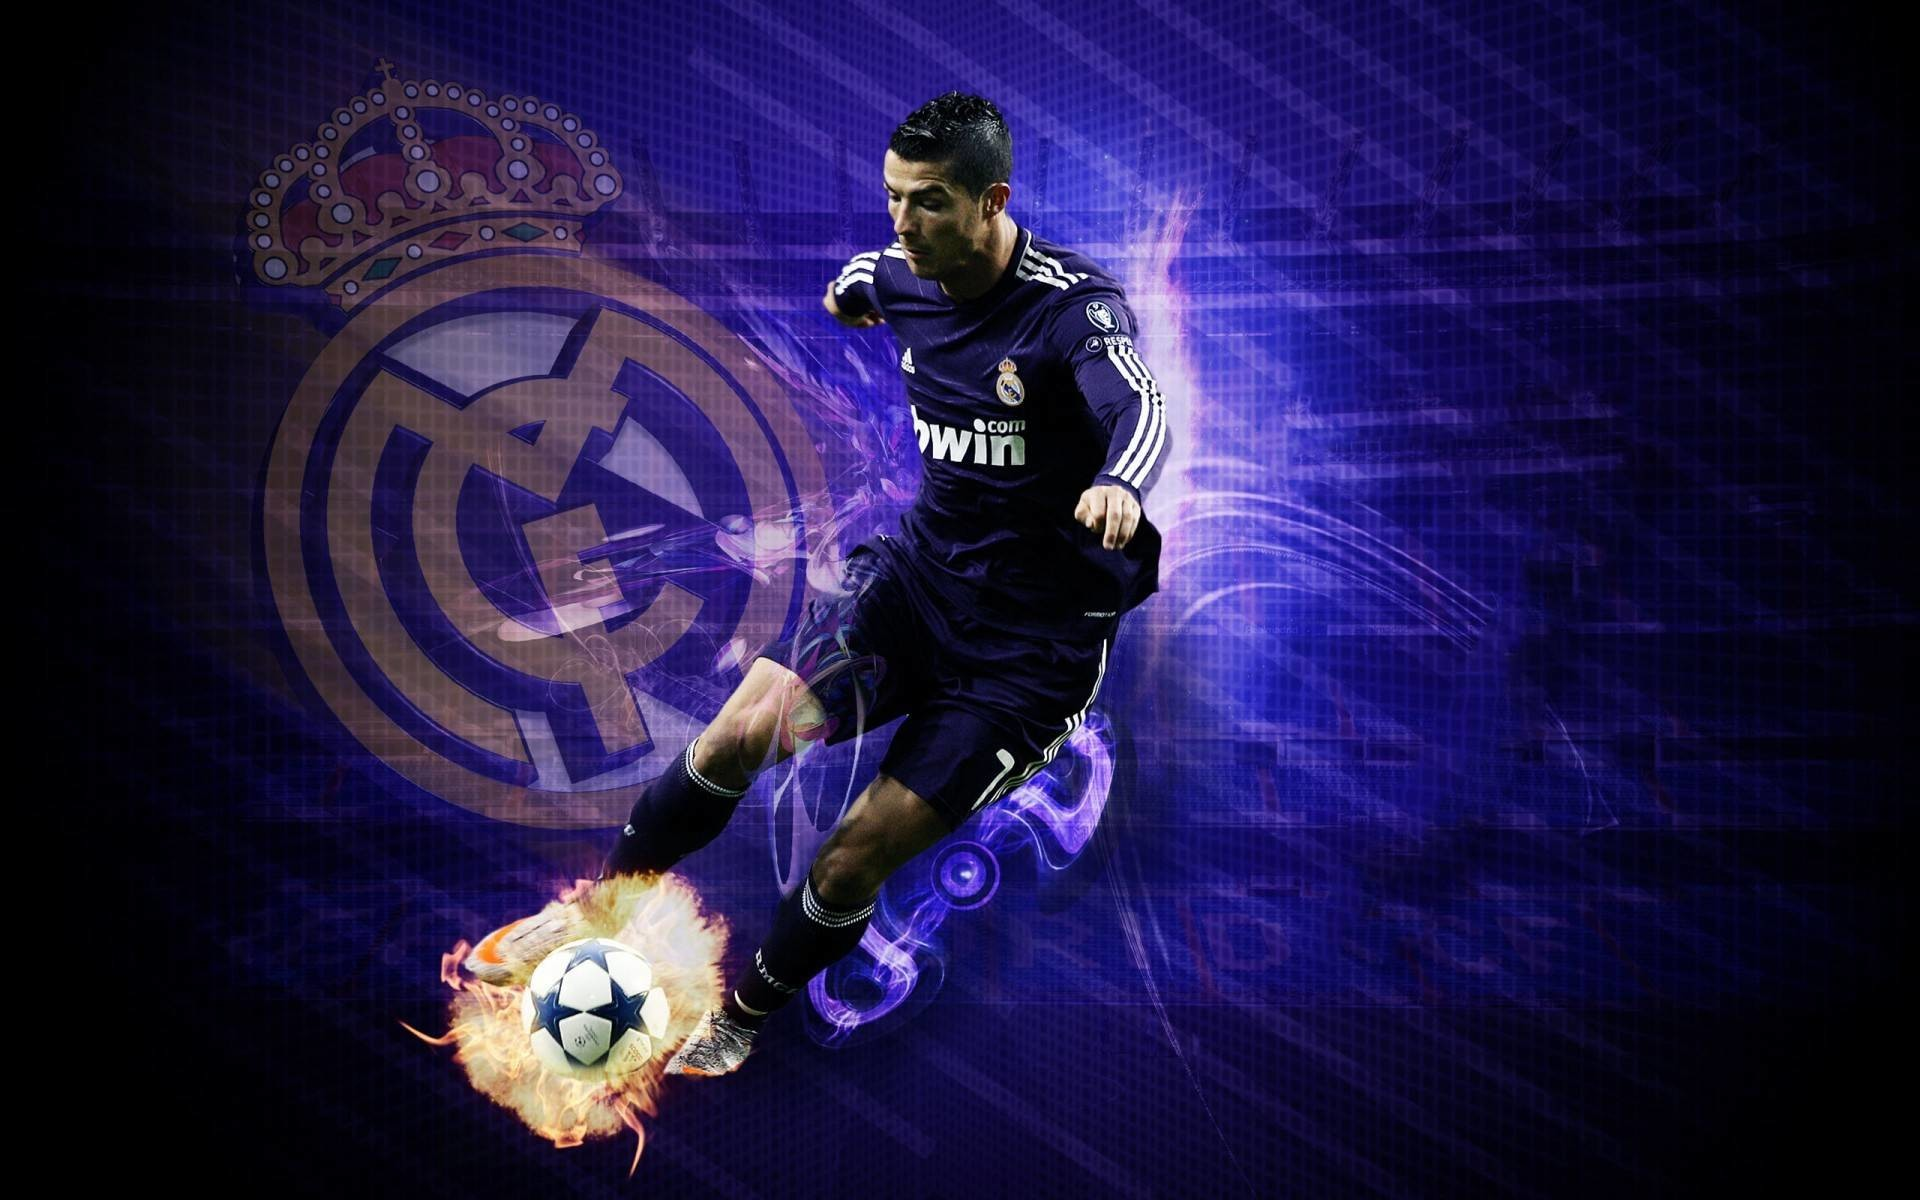 … Most Popular Cool Real Madrid Wallpapers Download Free Football Mobile  Wallpapers For Cell Phones Cool Real